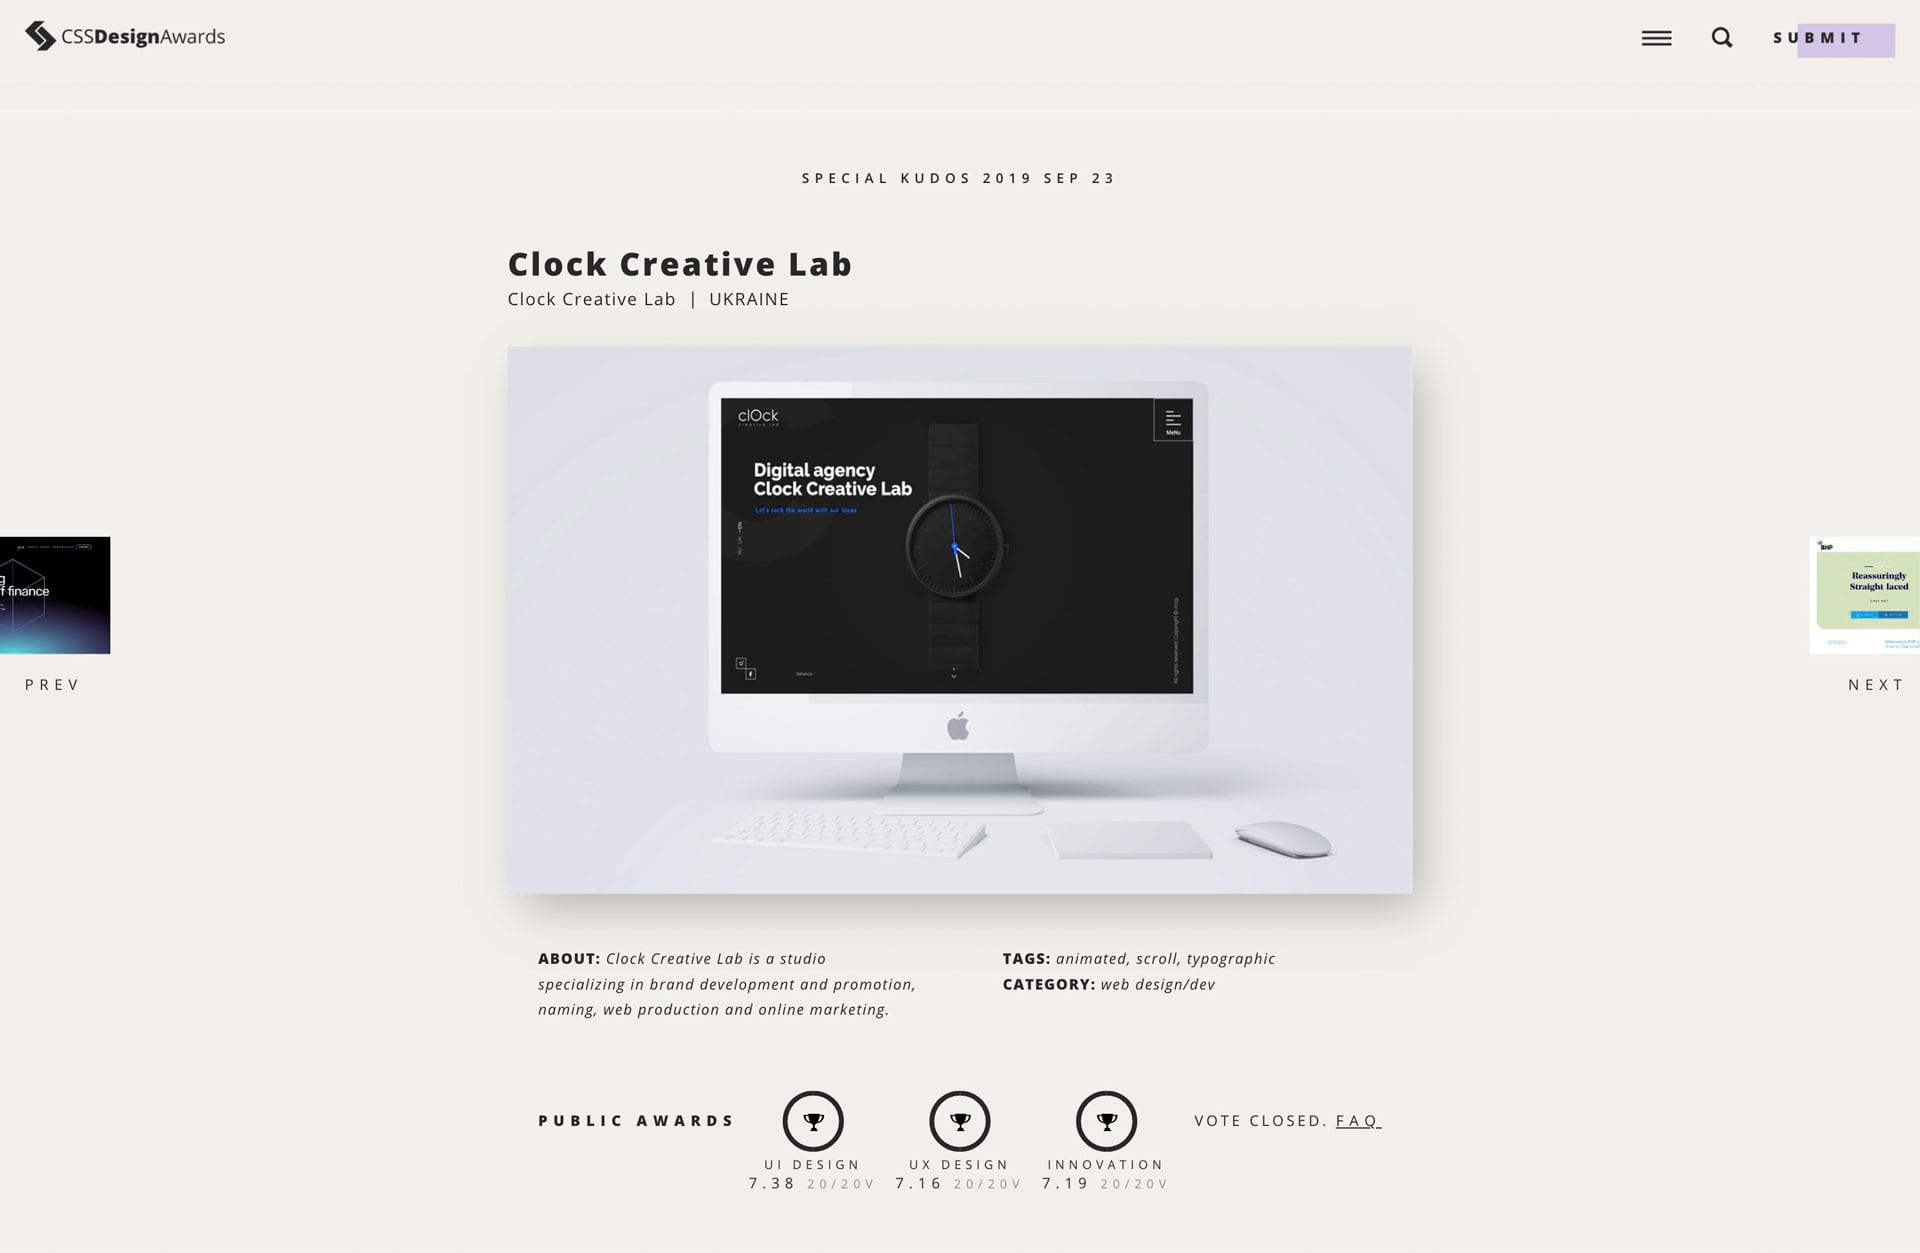 Clock Creative Lab high marks CCS Design Awards